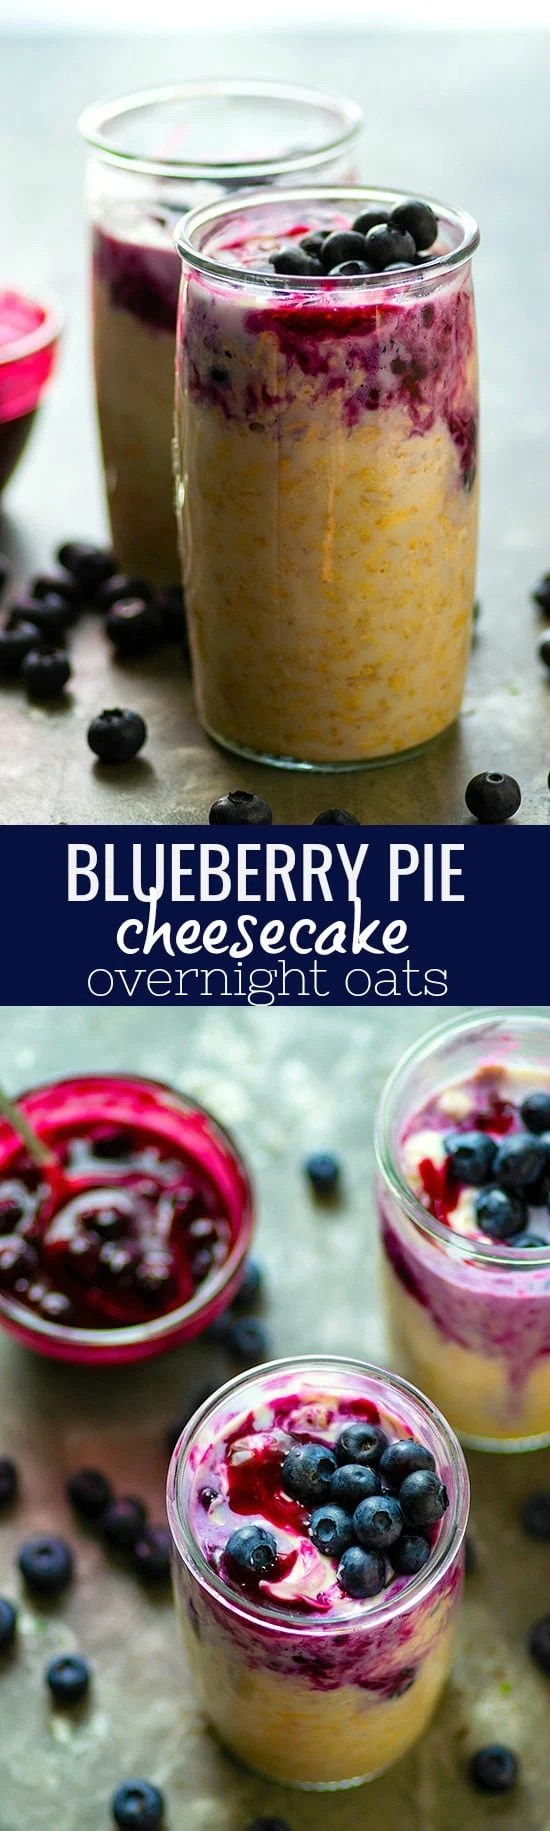 Blueberry Pie Cheesecake Overnight Oats - A juicy blueberry pie filling and a ribbon of cheesecake transform overnight oats into an indulgent breakfast treat! These blueberry pie cheesecake overnight oats will become a morning staple.